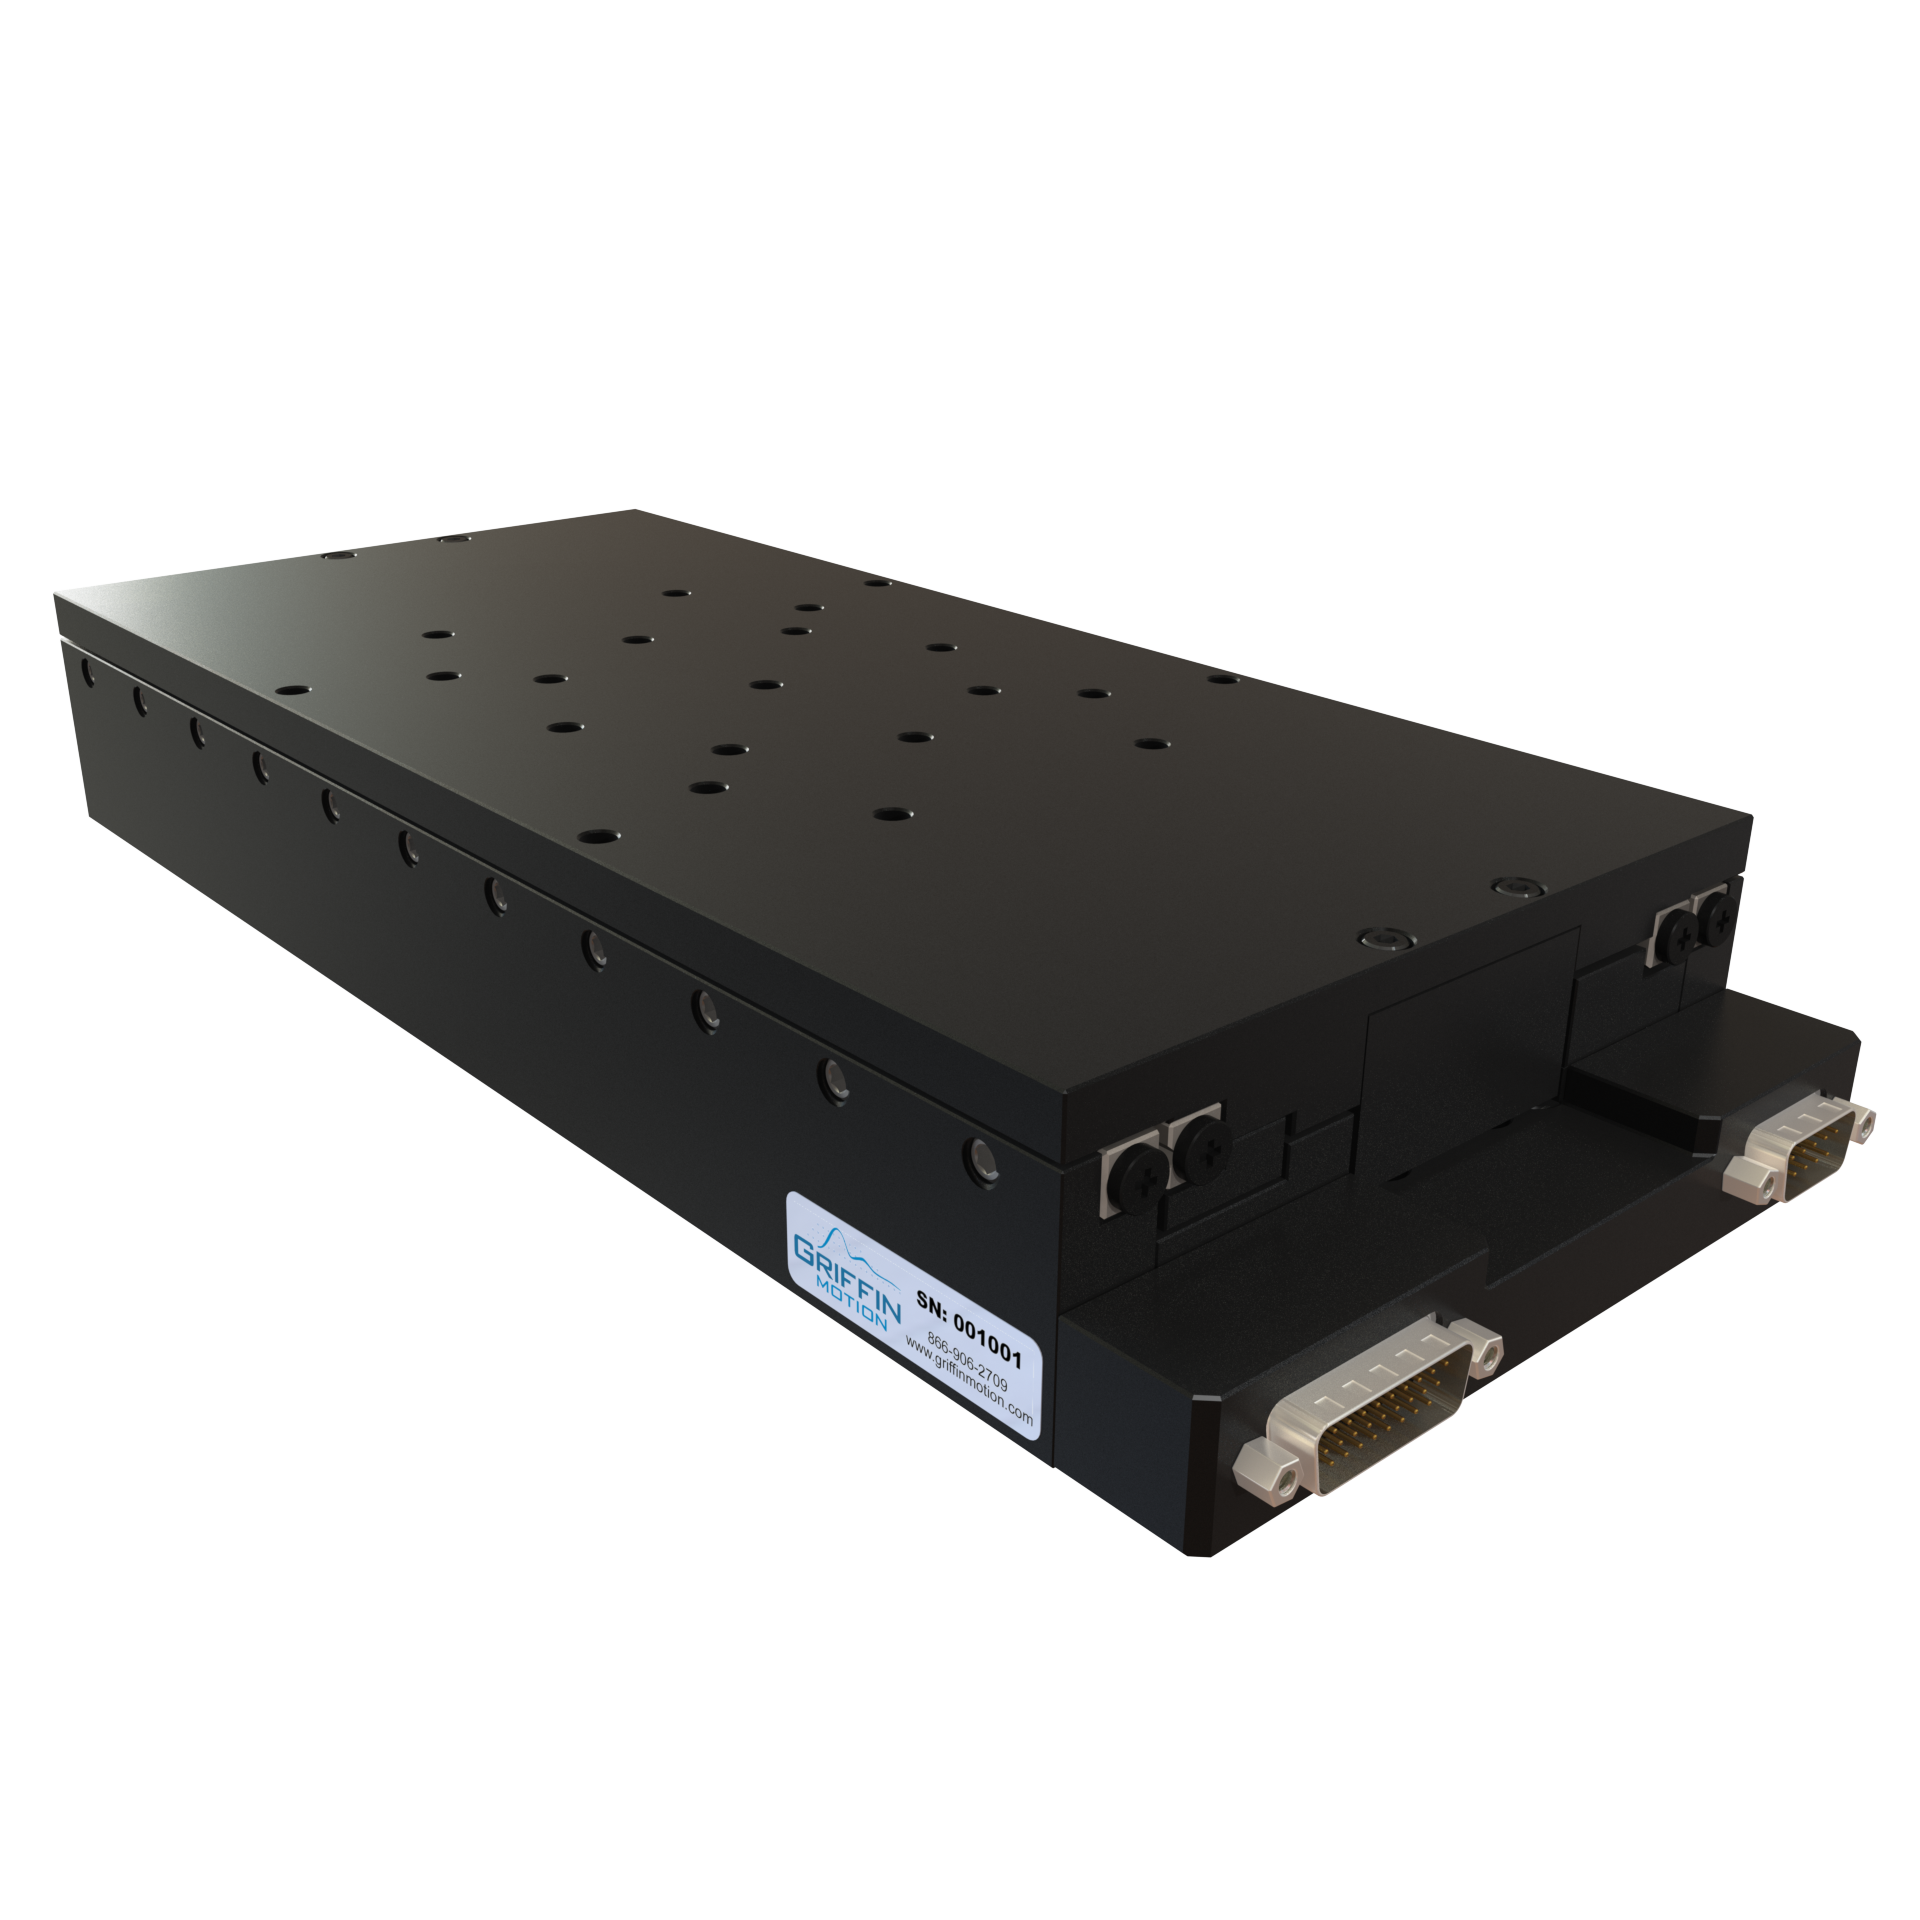 Precision Linear Stage with Ironless Linear Servo Drive, Crossed Roller Ways, and Linear Encoder